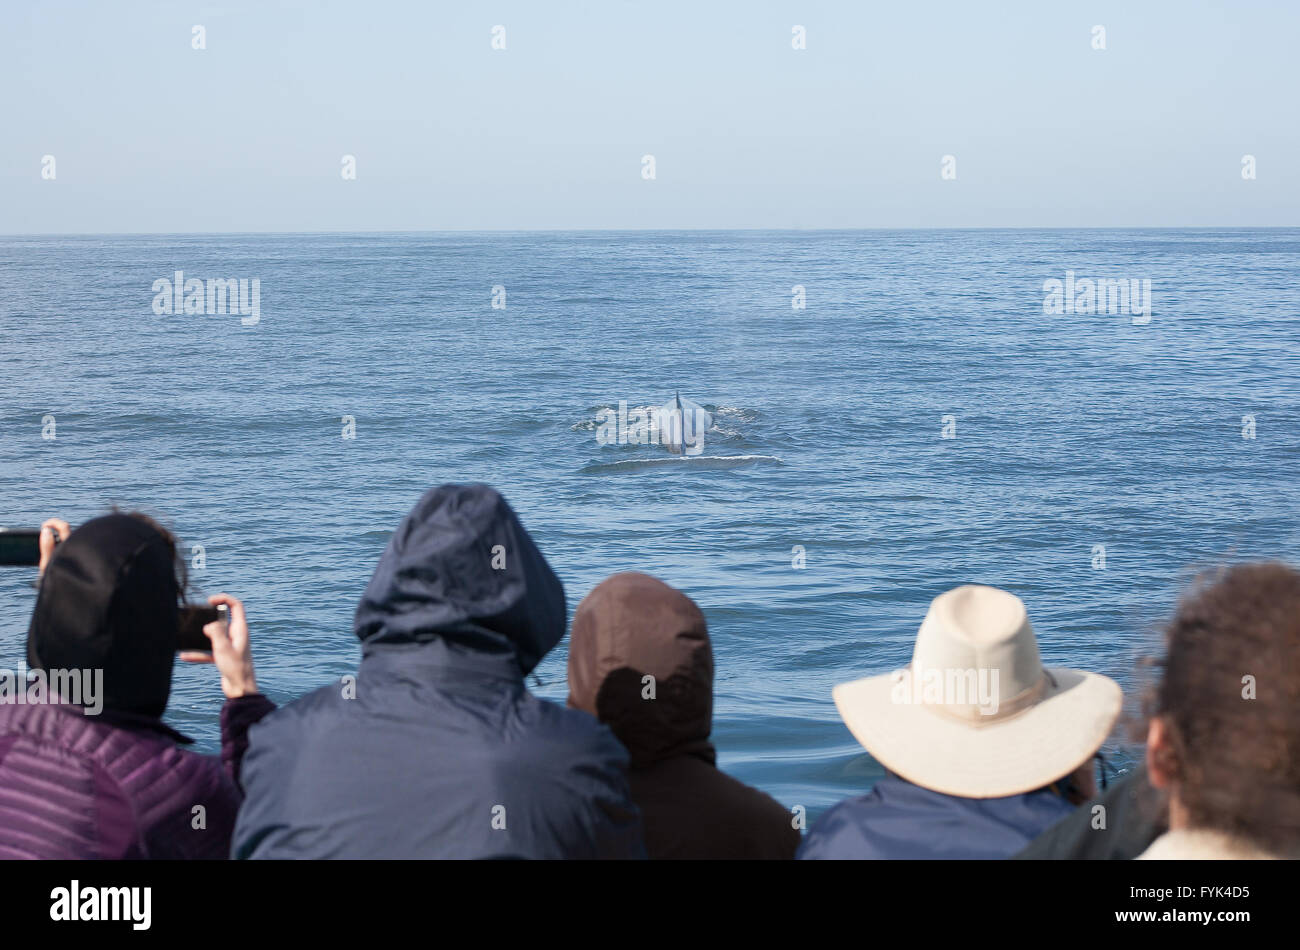 On a whale watching cruise in Long Beach, a whale appears as onlookers take photographs with their cell phones. - Stock Image